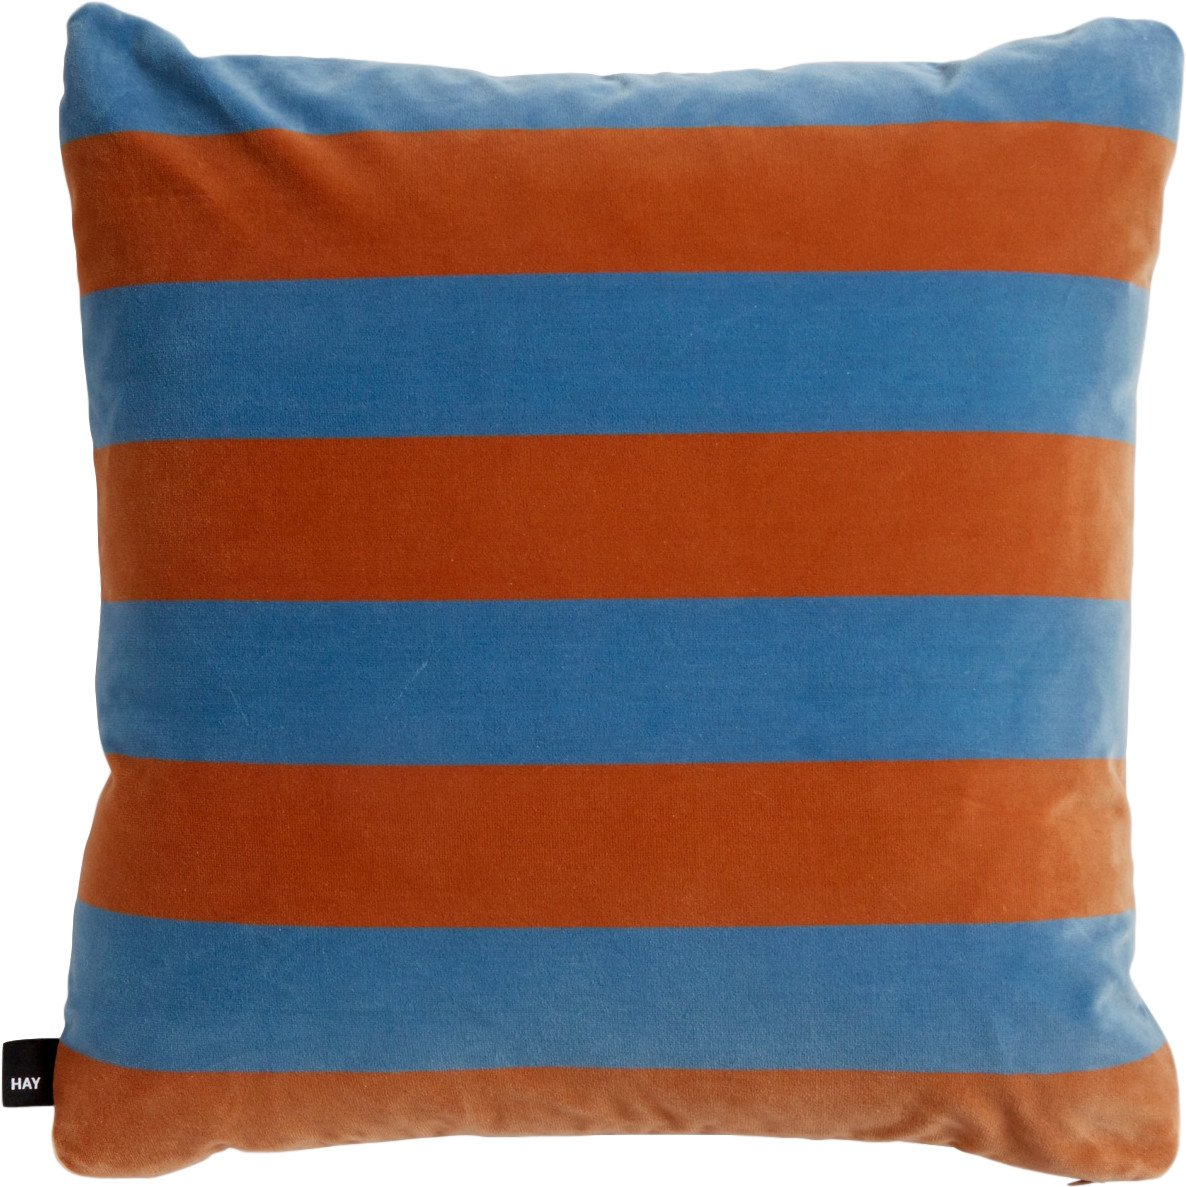 Soft Stripe Cushion 50 x 50 cm Soft Blue, HAY